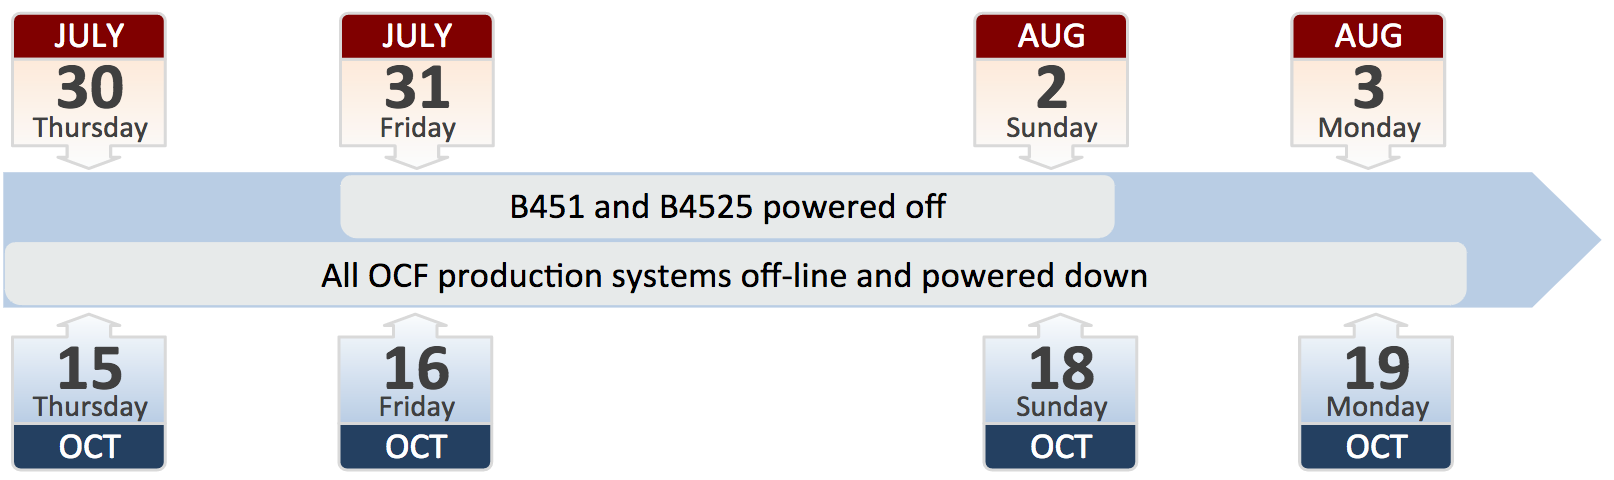 Visual representation of power outage timeline provided in chart above.